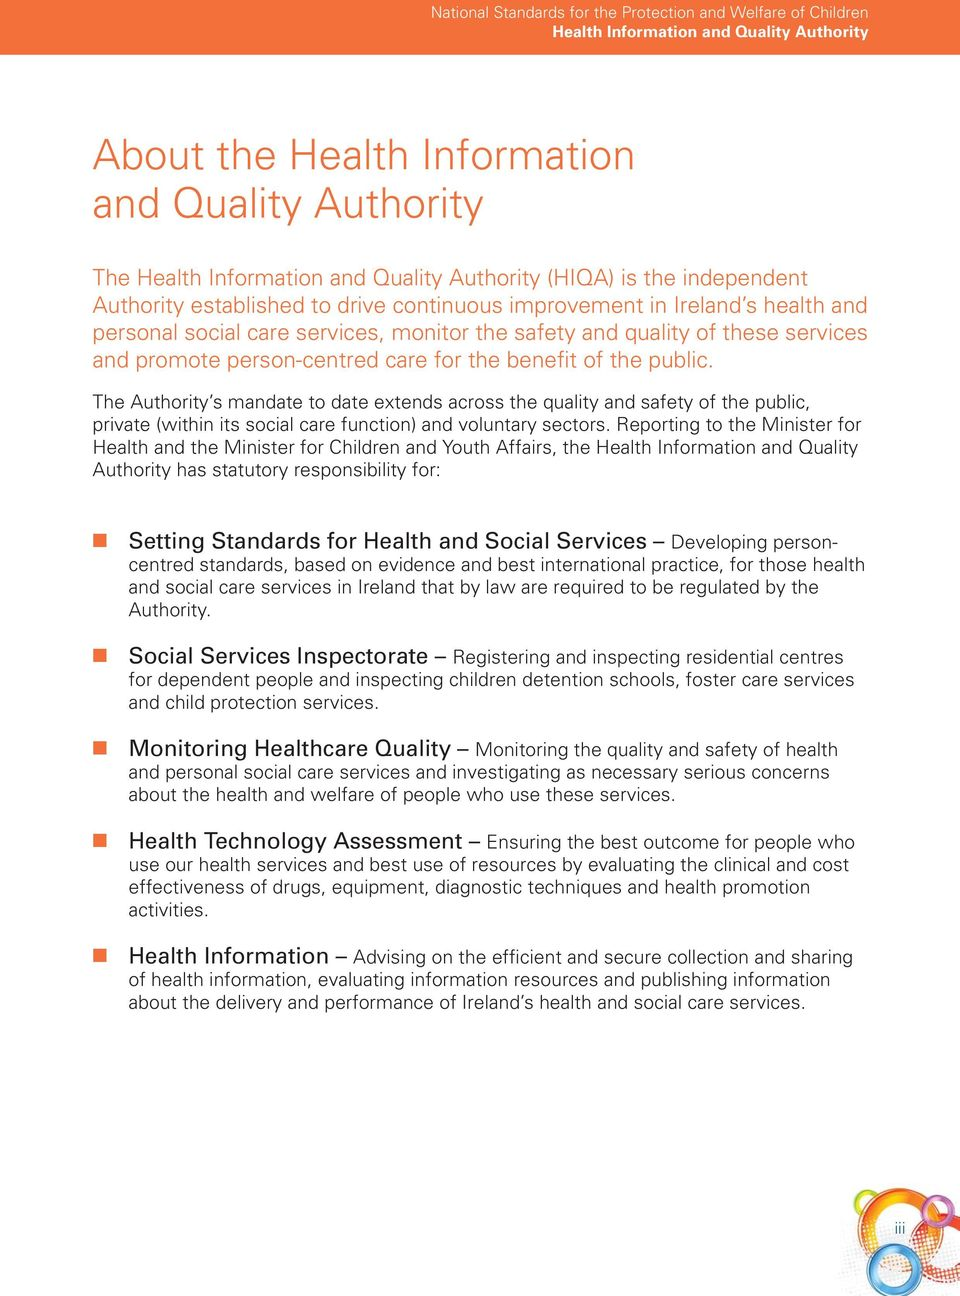 The Authority s mandate to date extends across the quality and safety of the public, private (within its social care function) and voluntary sectors.